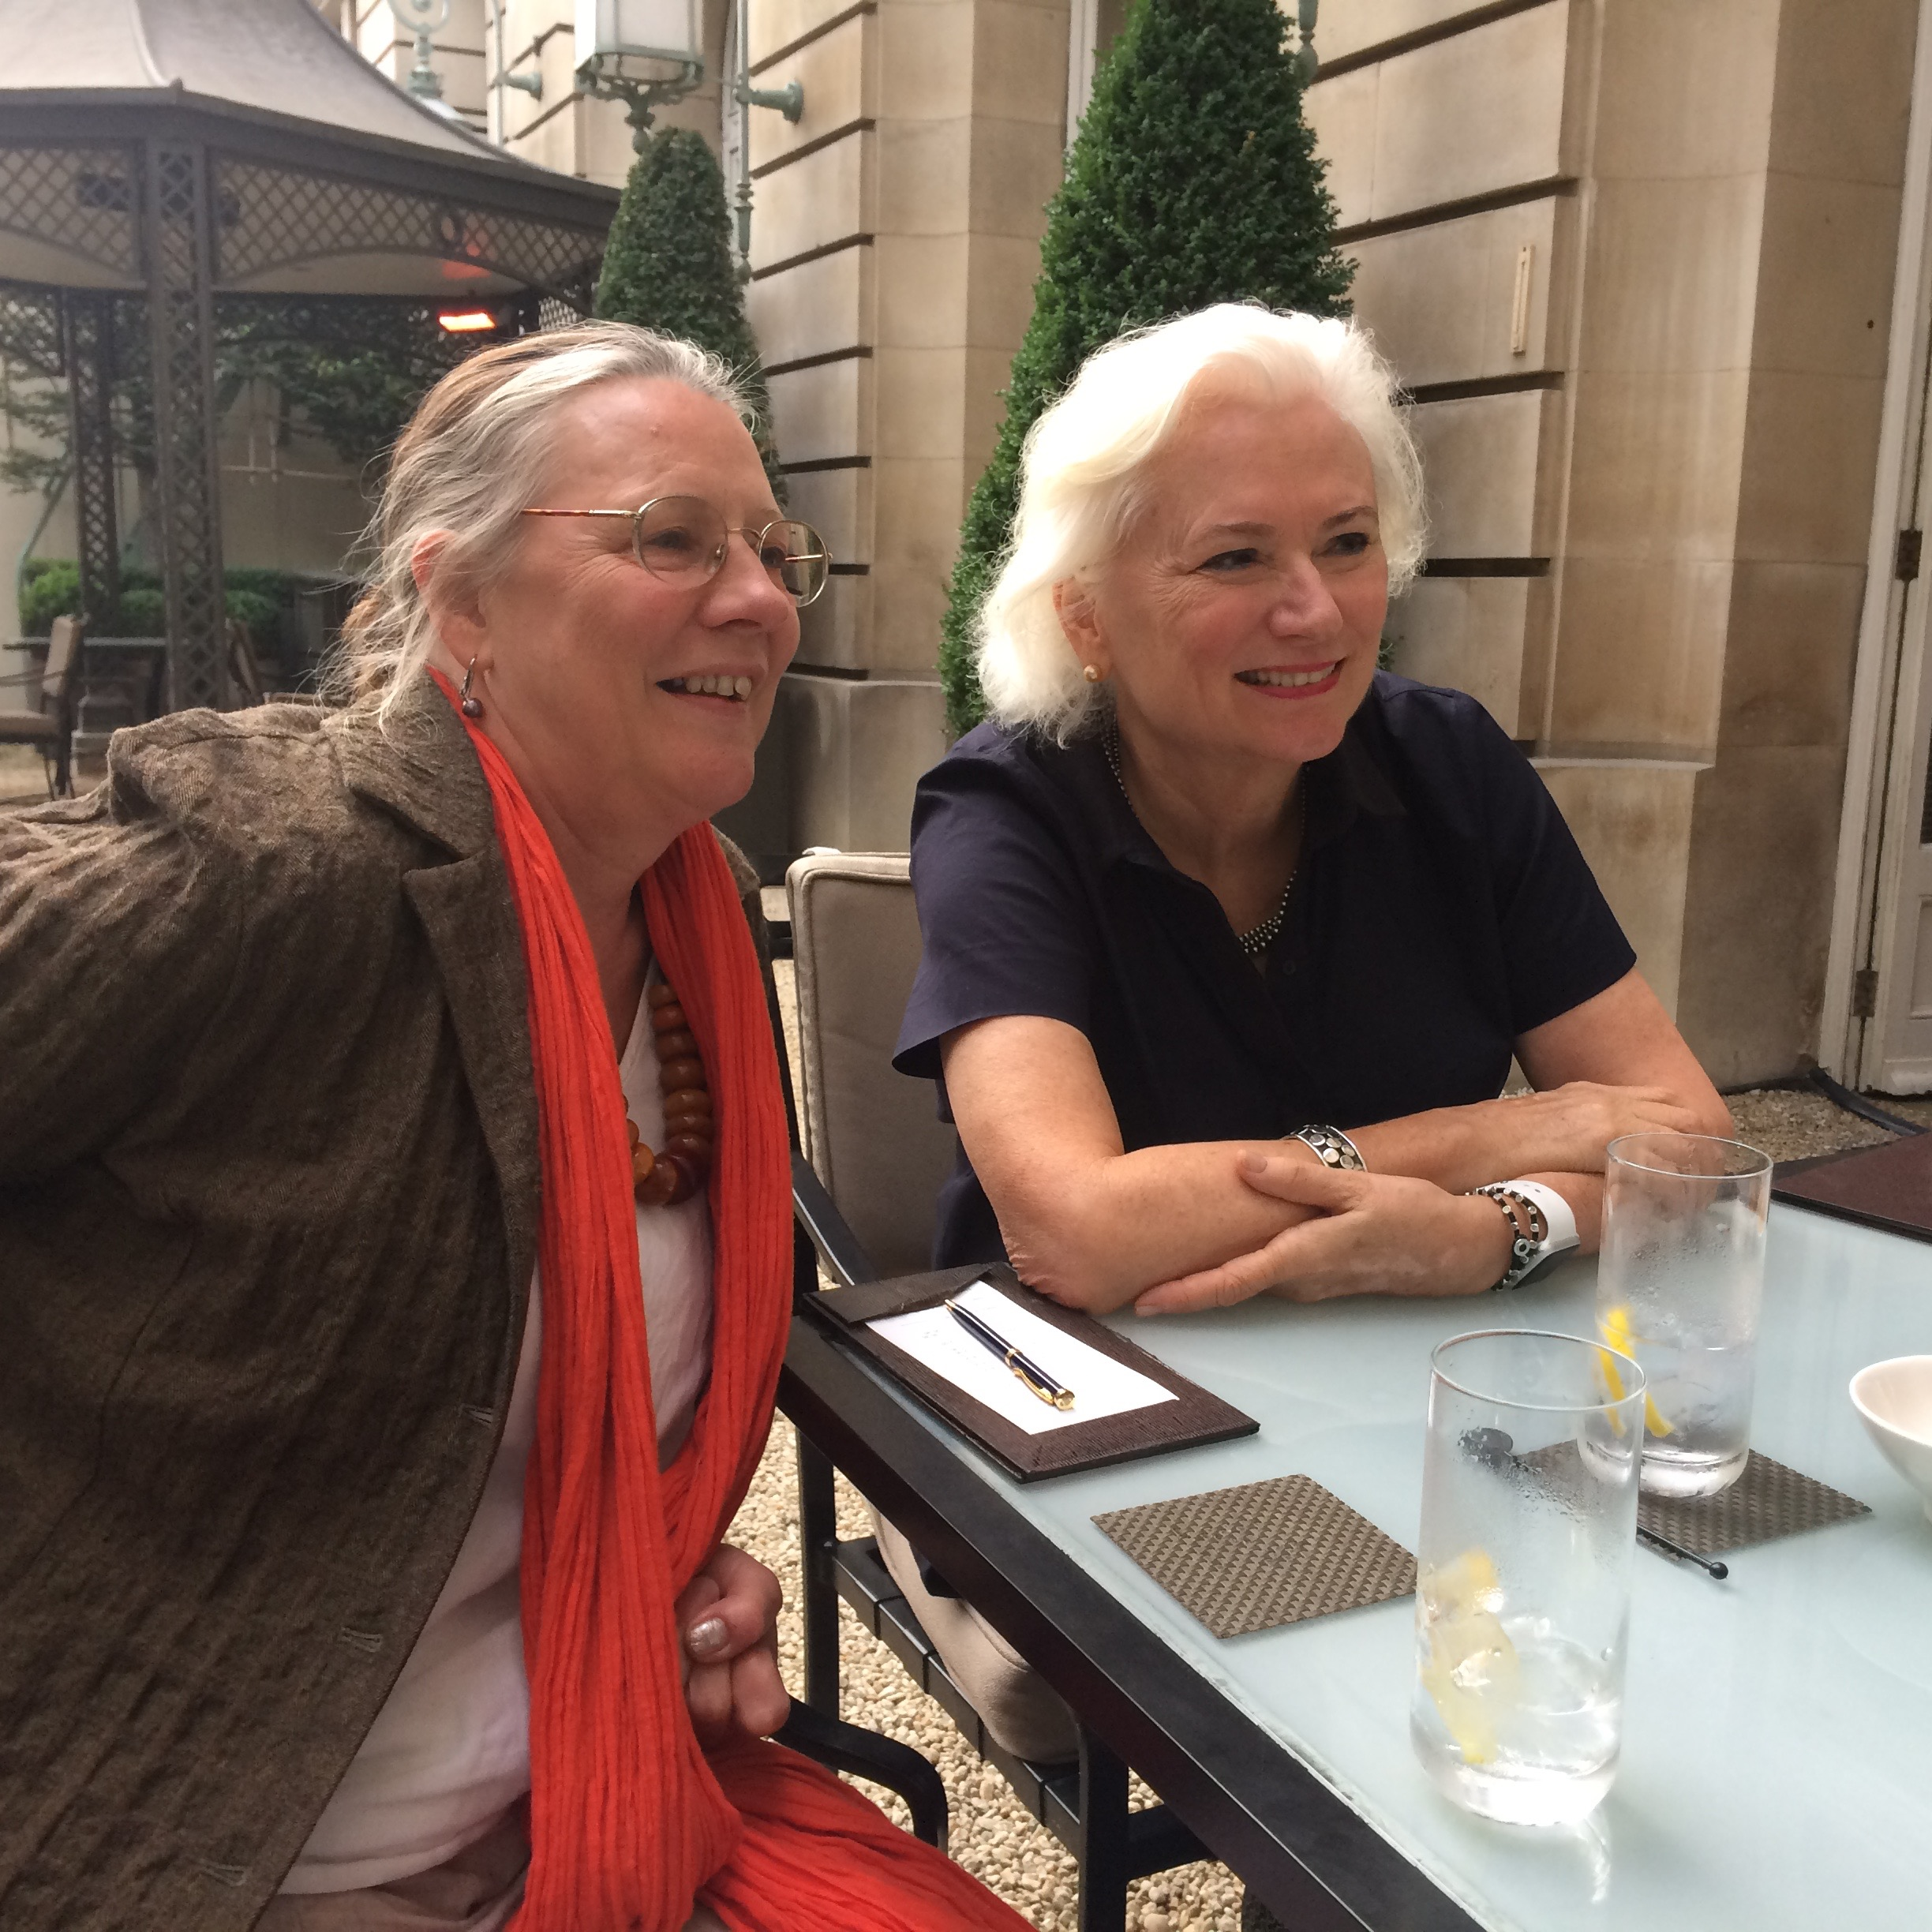 2016 - Sept 4. The Courtauld with Elizabeth Bailey